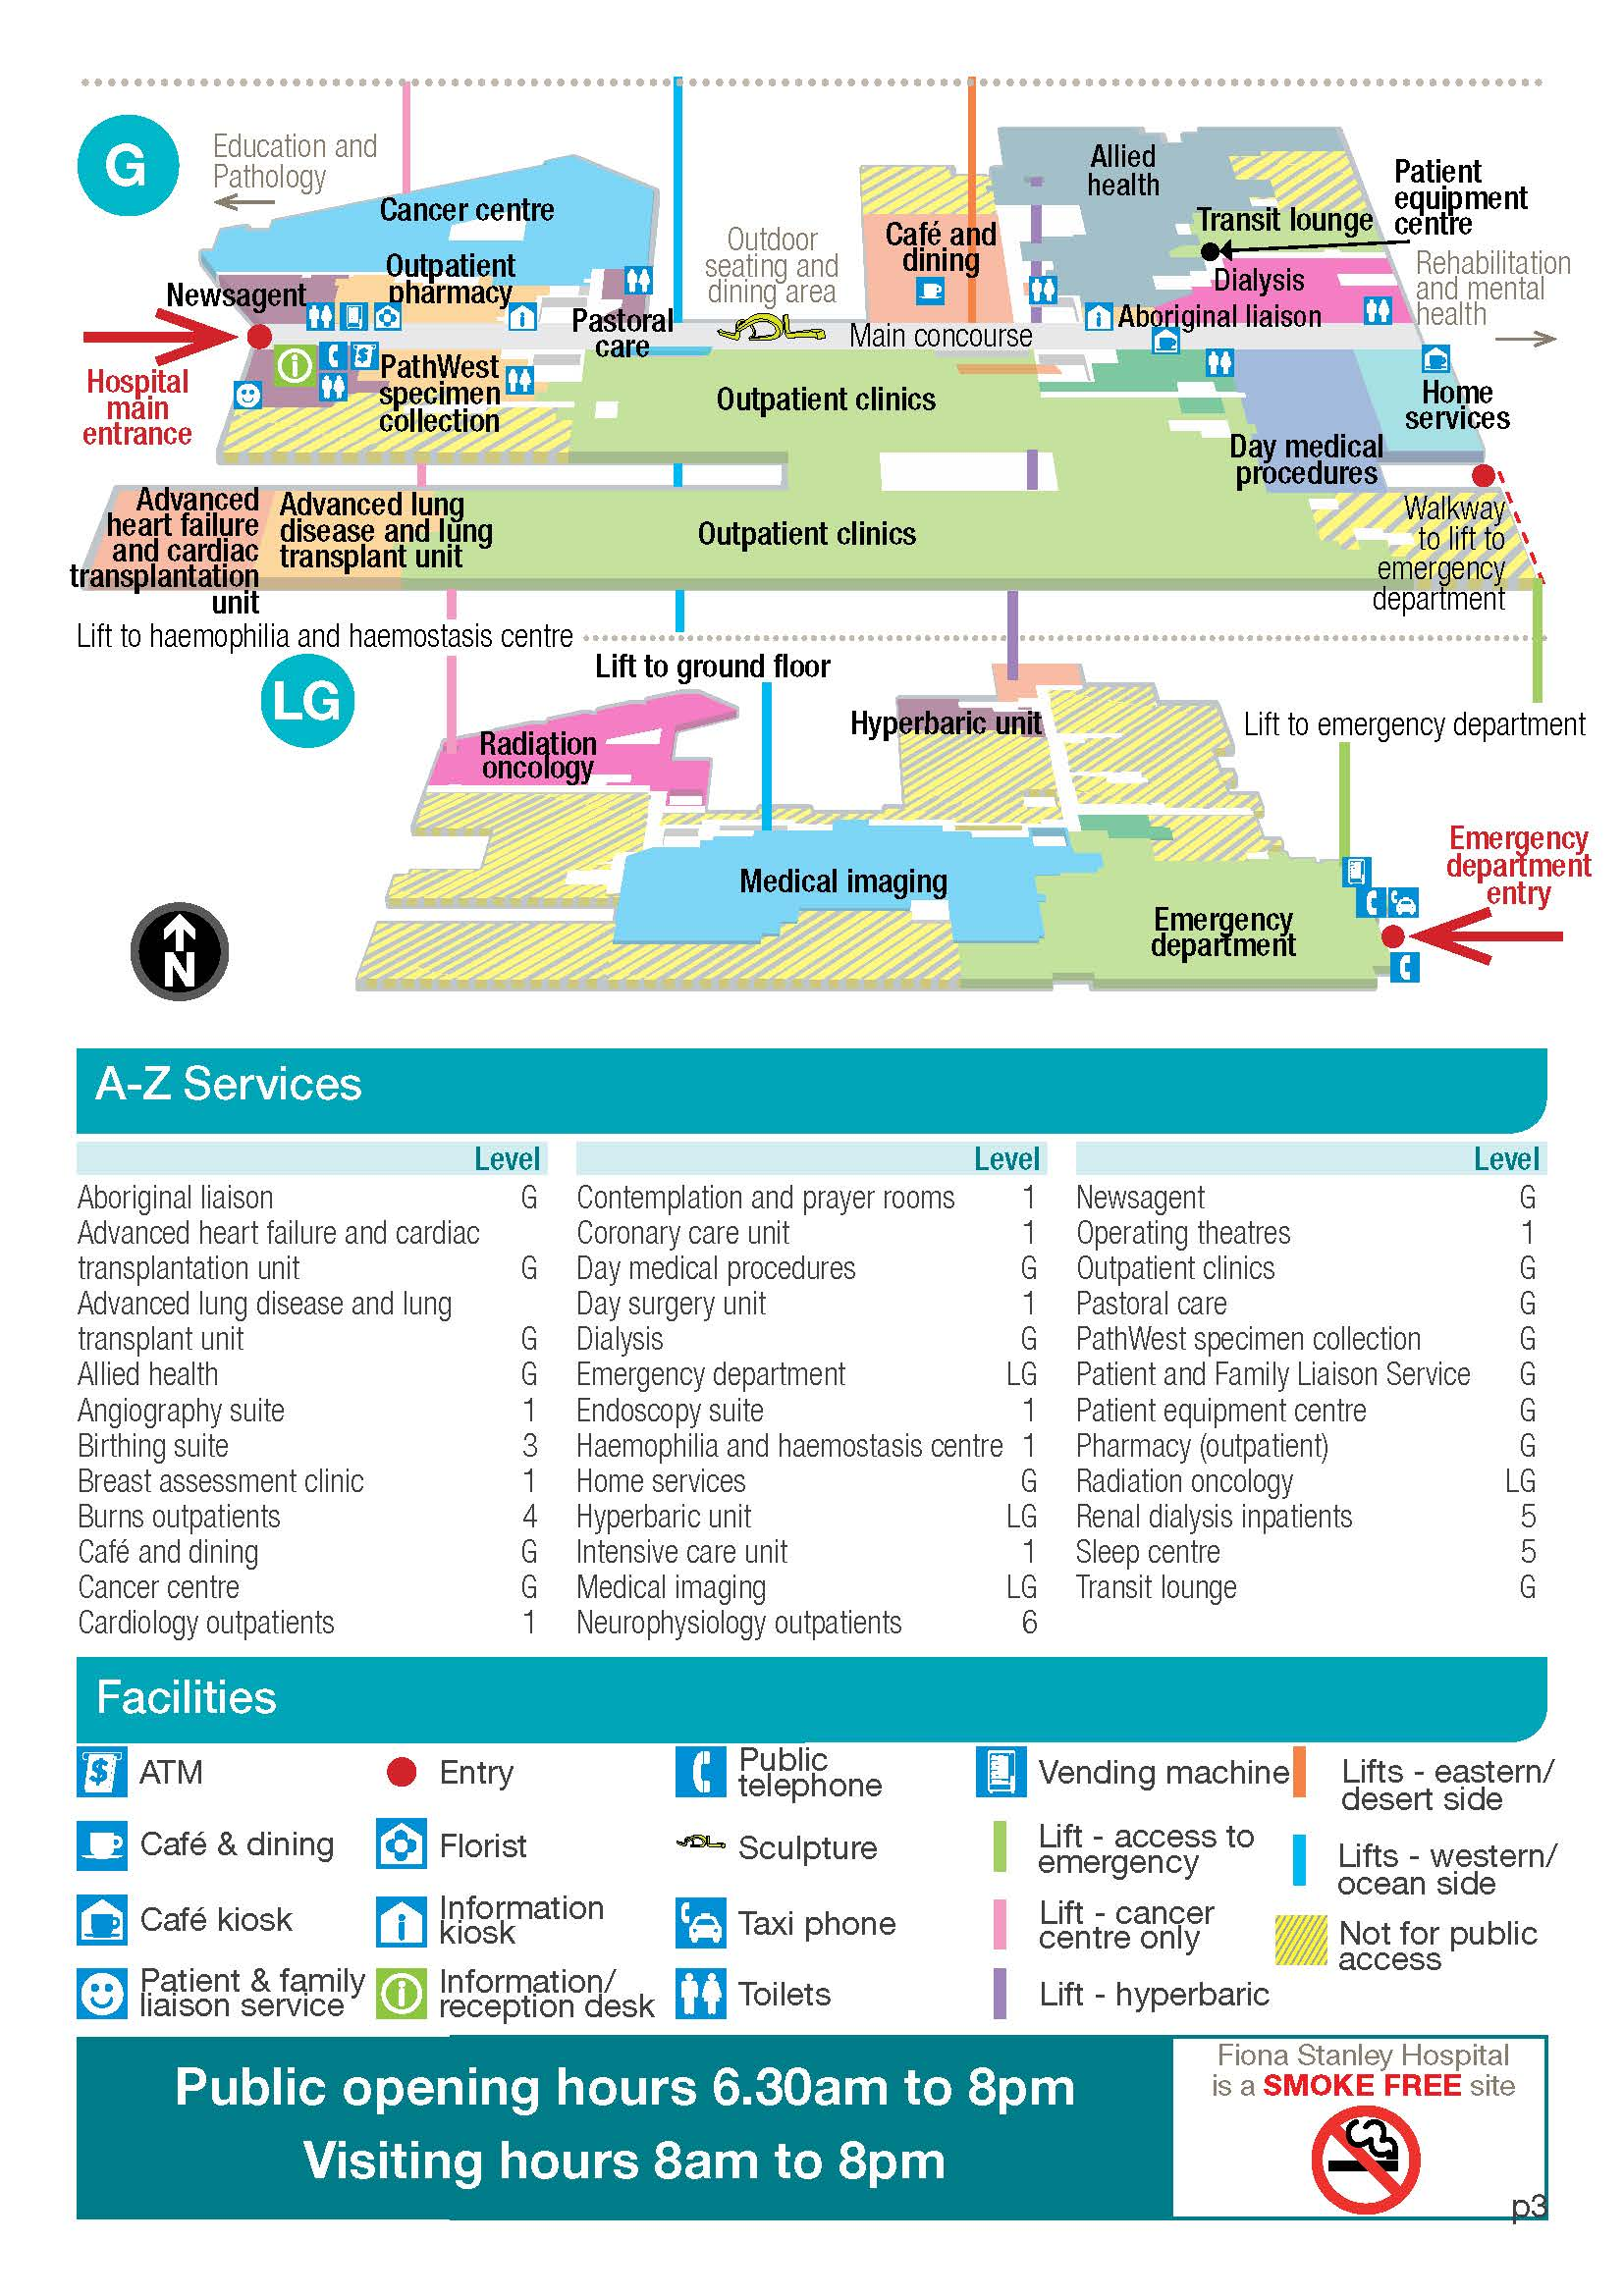 Map showing the services at Fiona Stanley Hospital by an A-Z listing